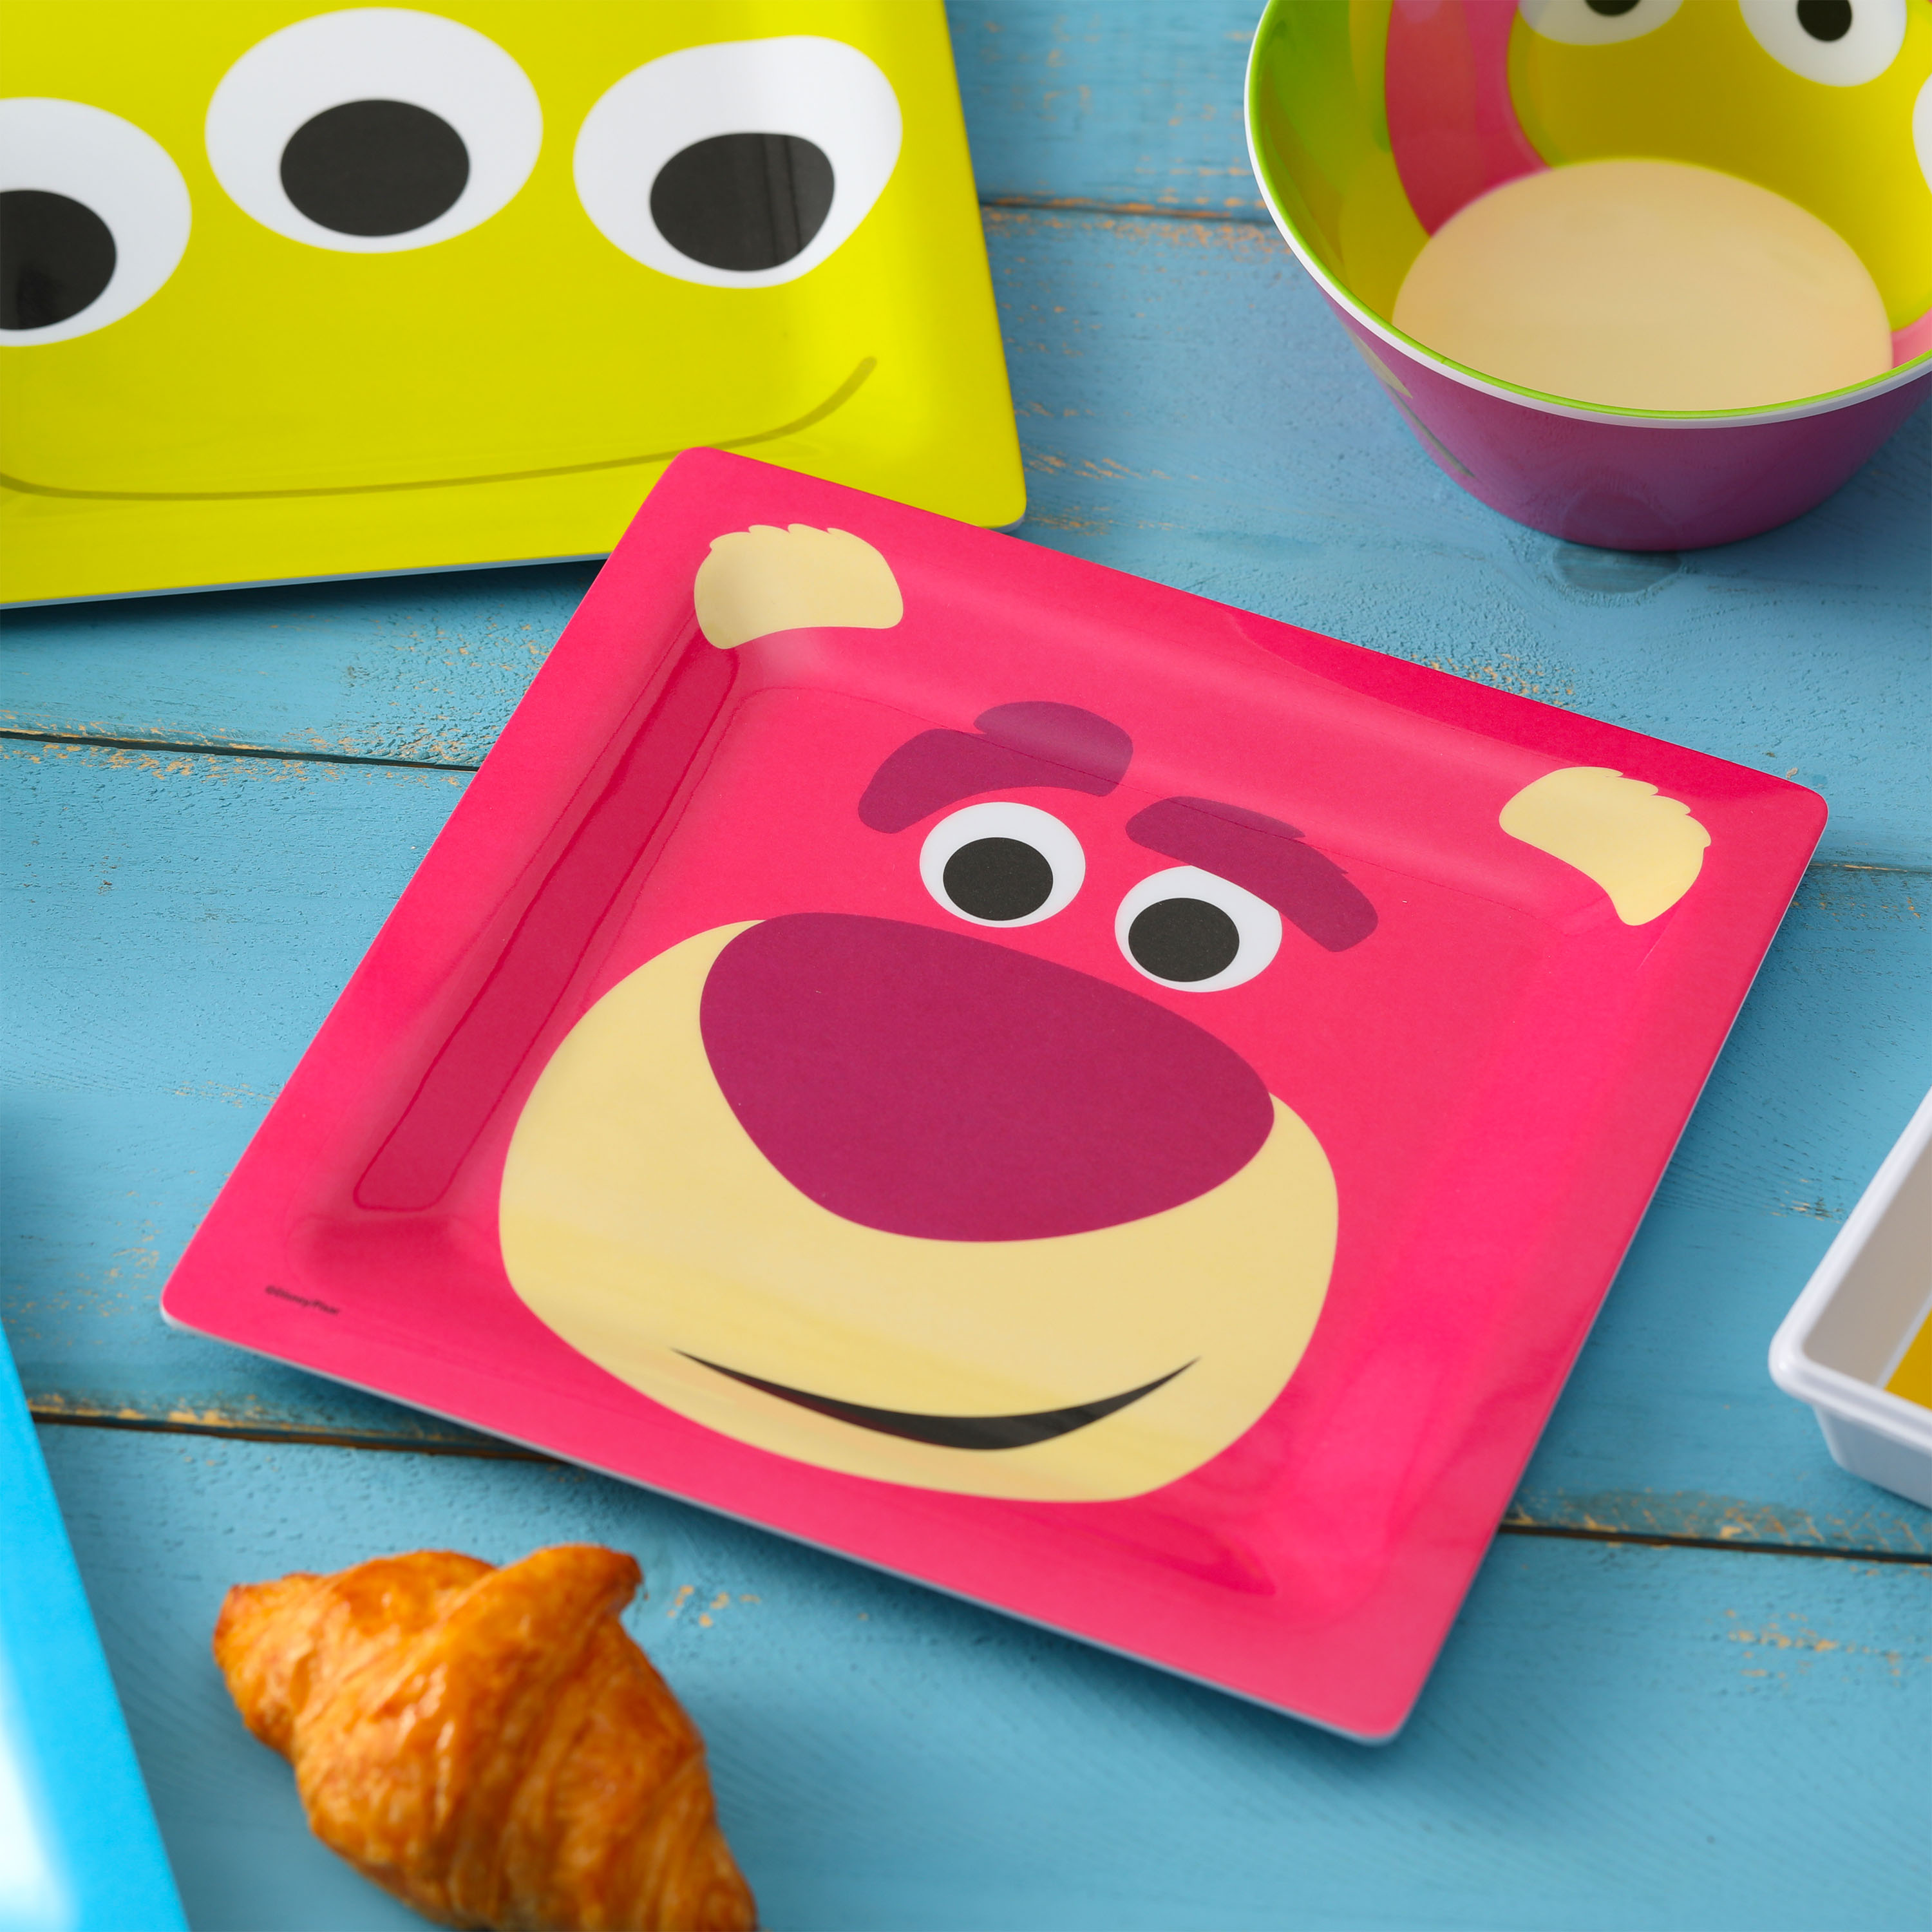 Disney and Pixar Toy Story 4 Plate and Bowl Set, Lotso, 2-piece set slideshow image 3